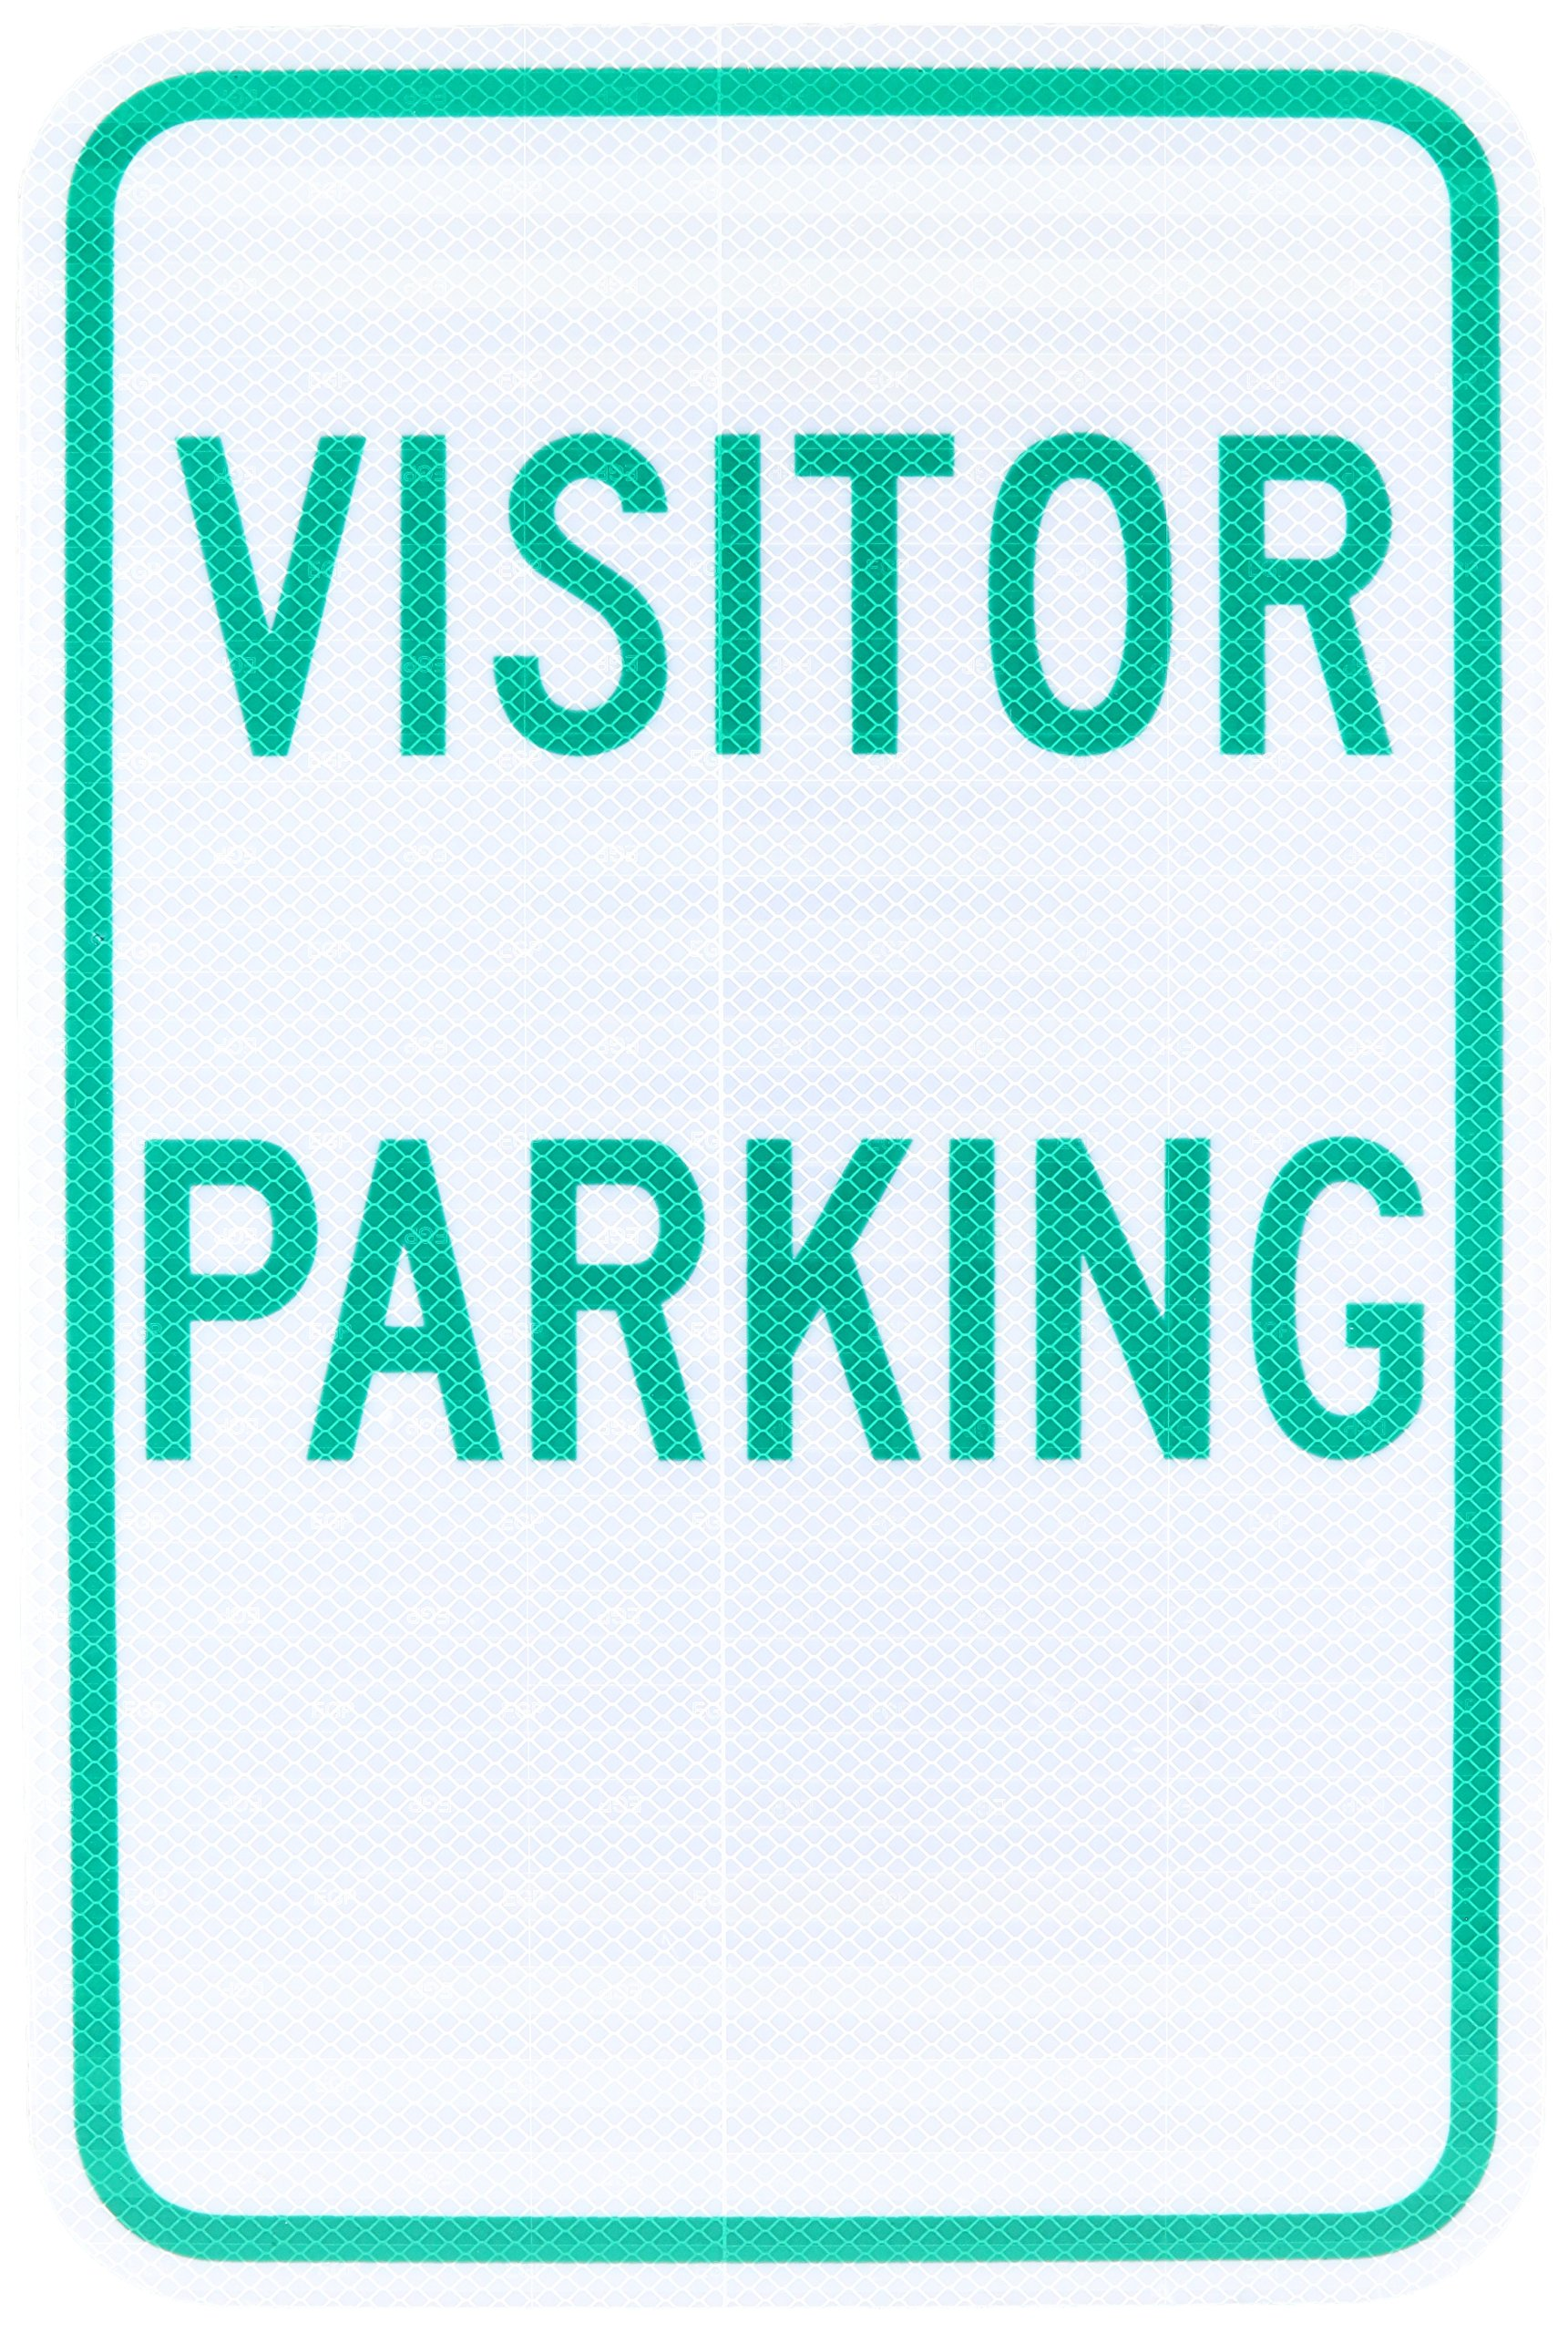 Tapco RP-5 Engineer Grade Prismatic Rectangular Parking Sign, Legend ''VISITOR PARKING'', 12'' Width x 18'' Height, Aluminum, Green on White